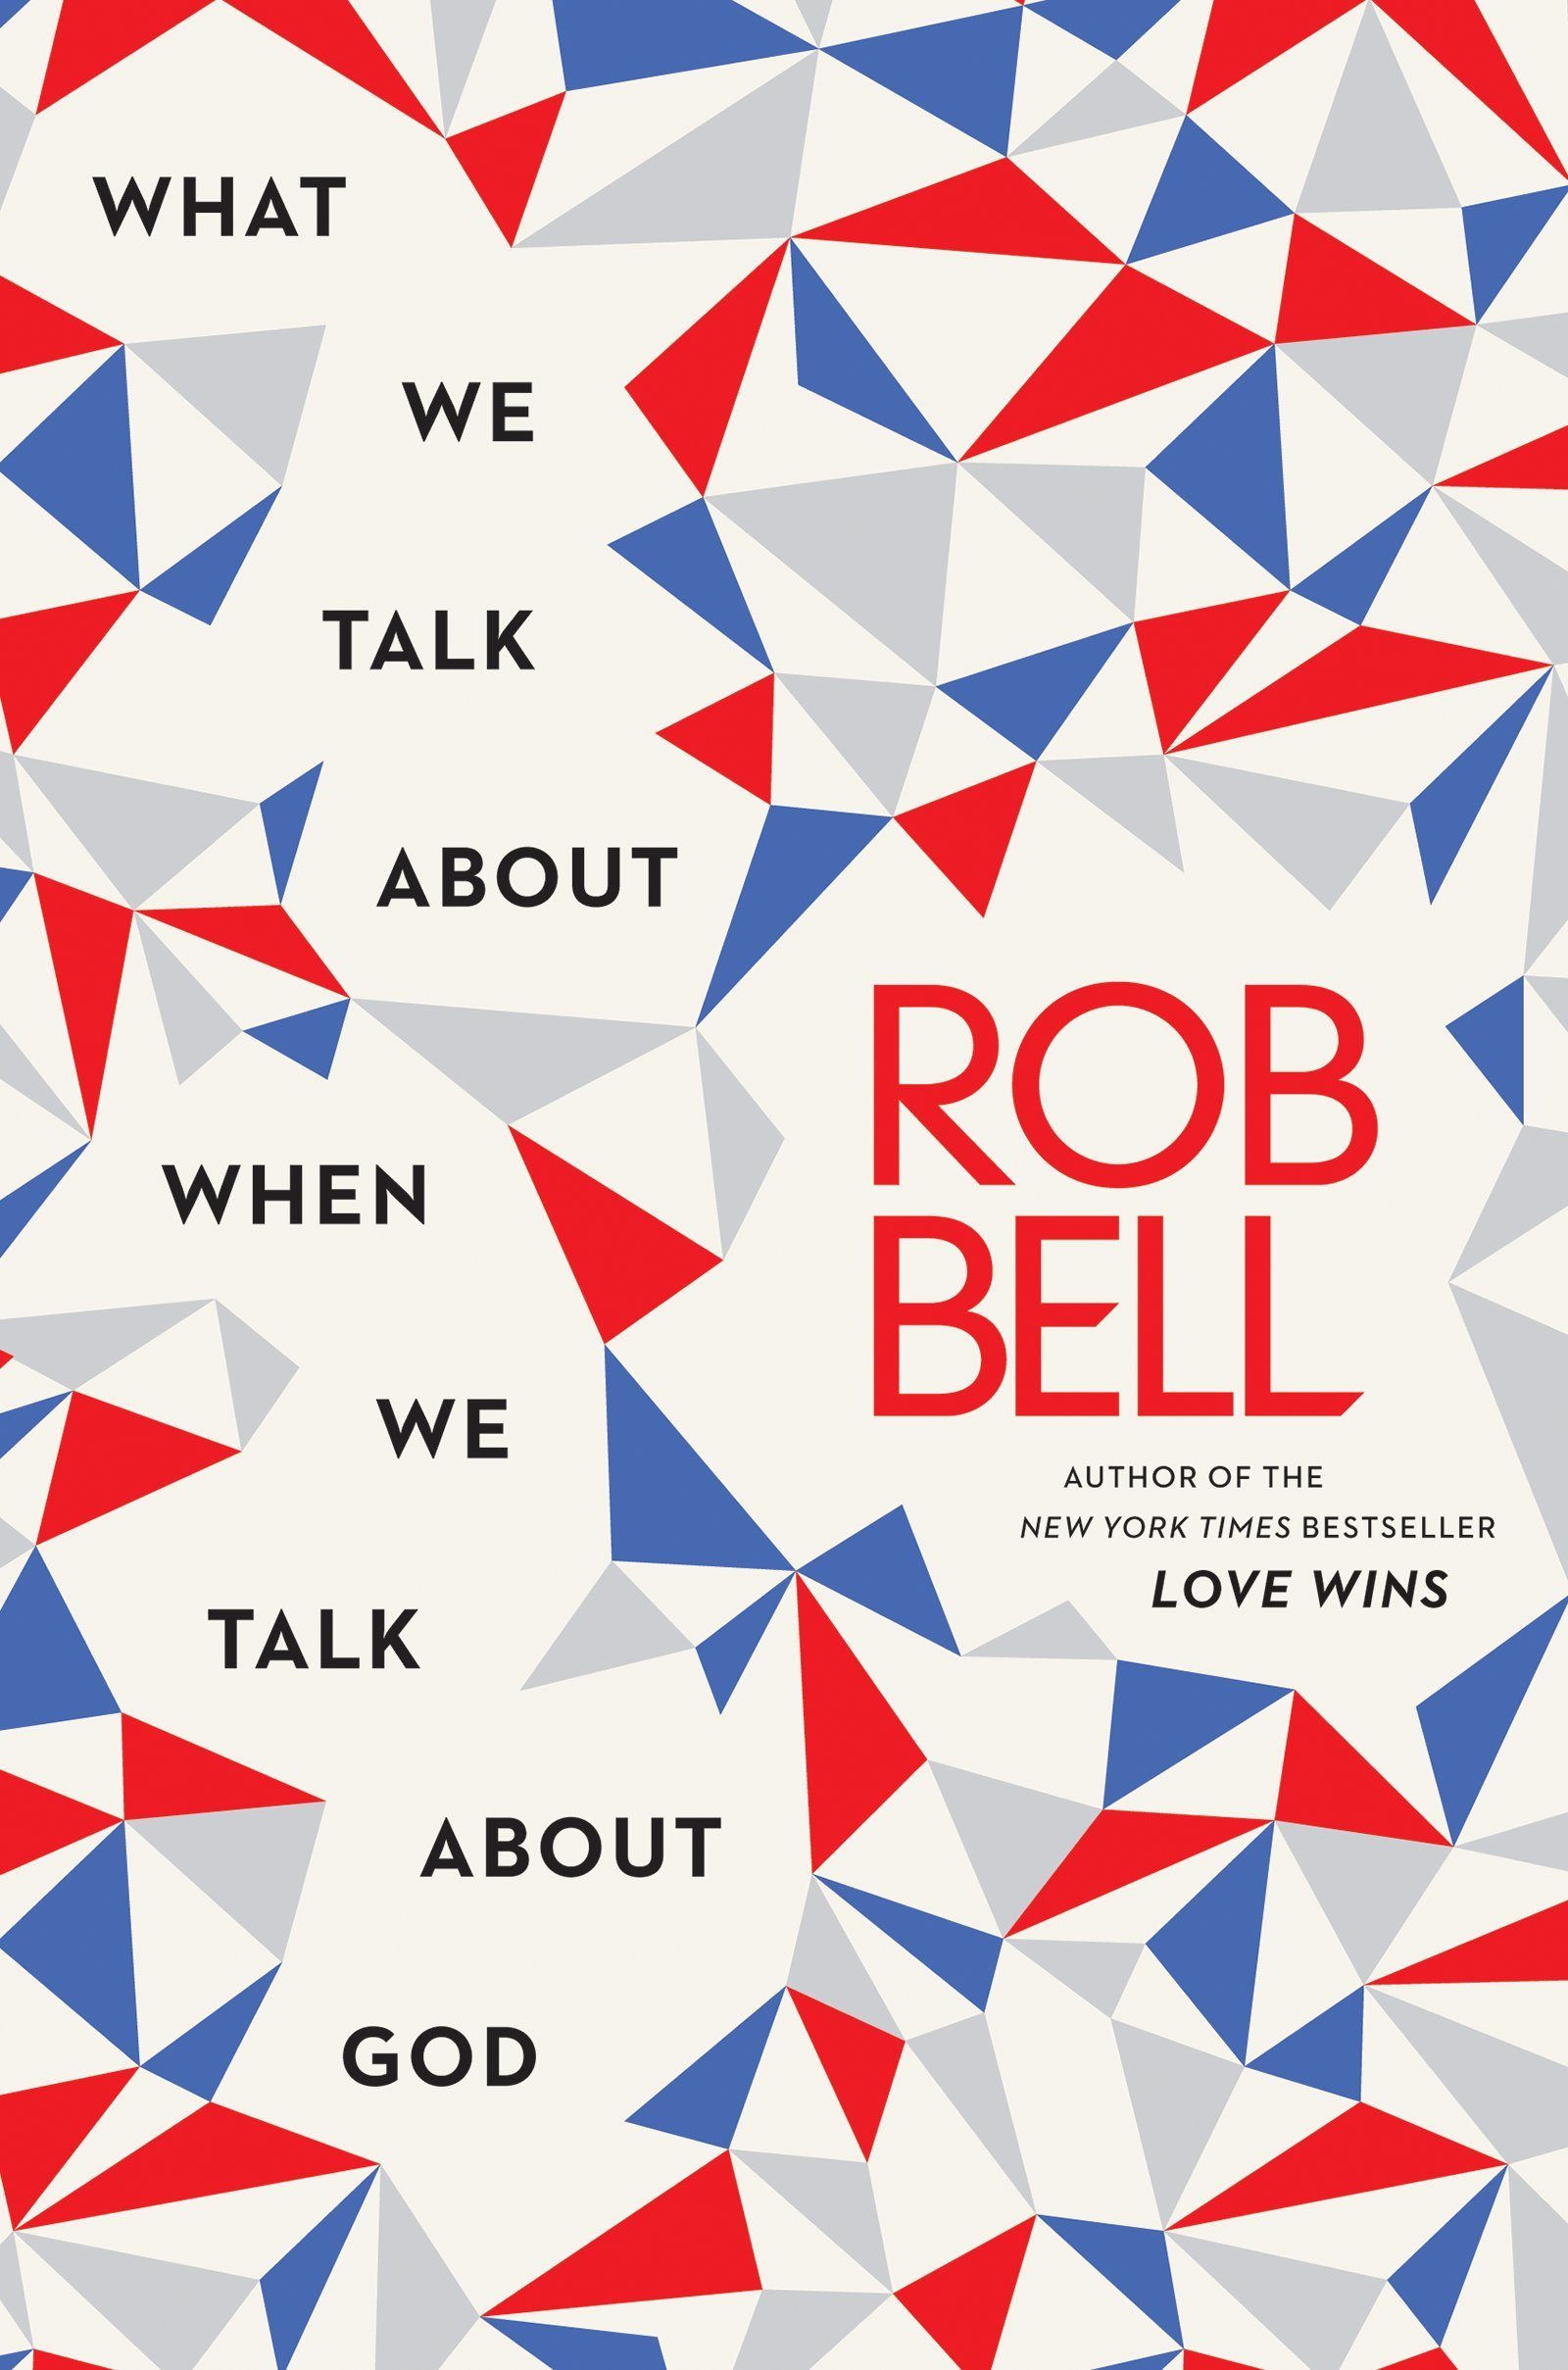 Rob bell sex god chapters improbable